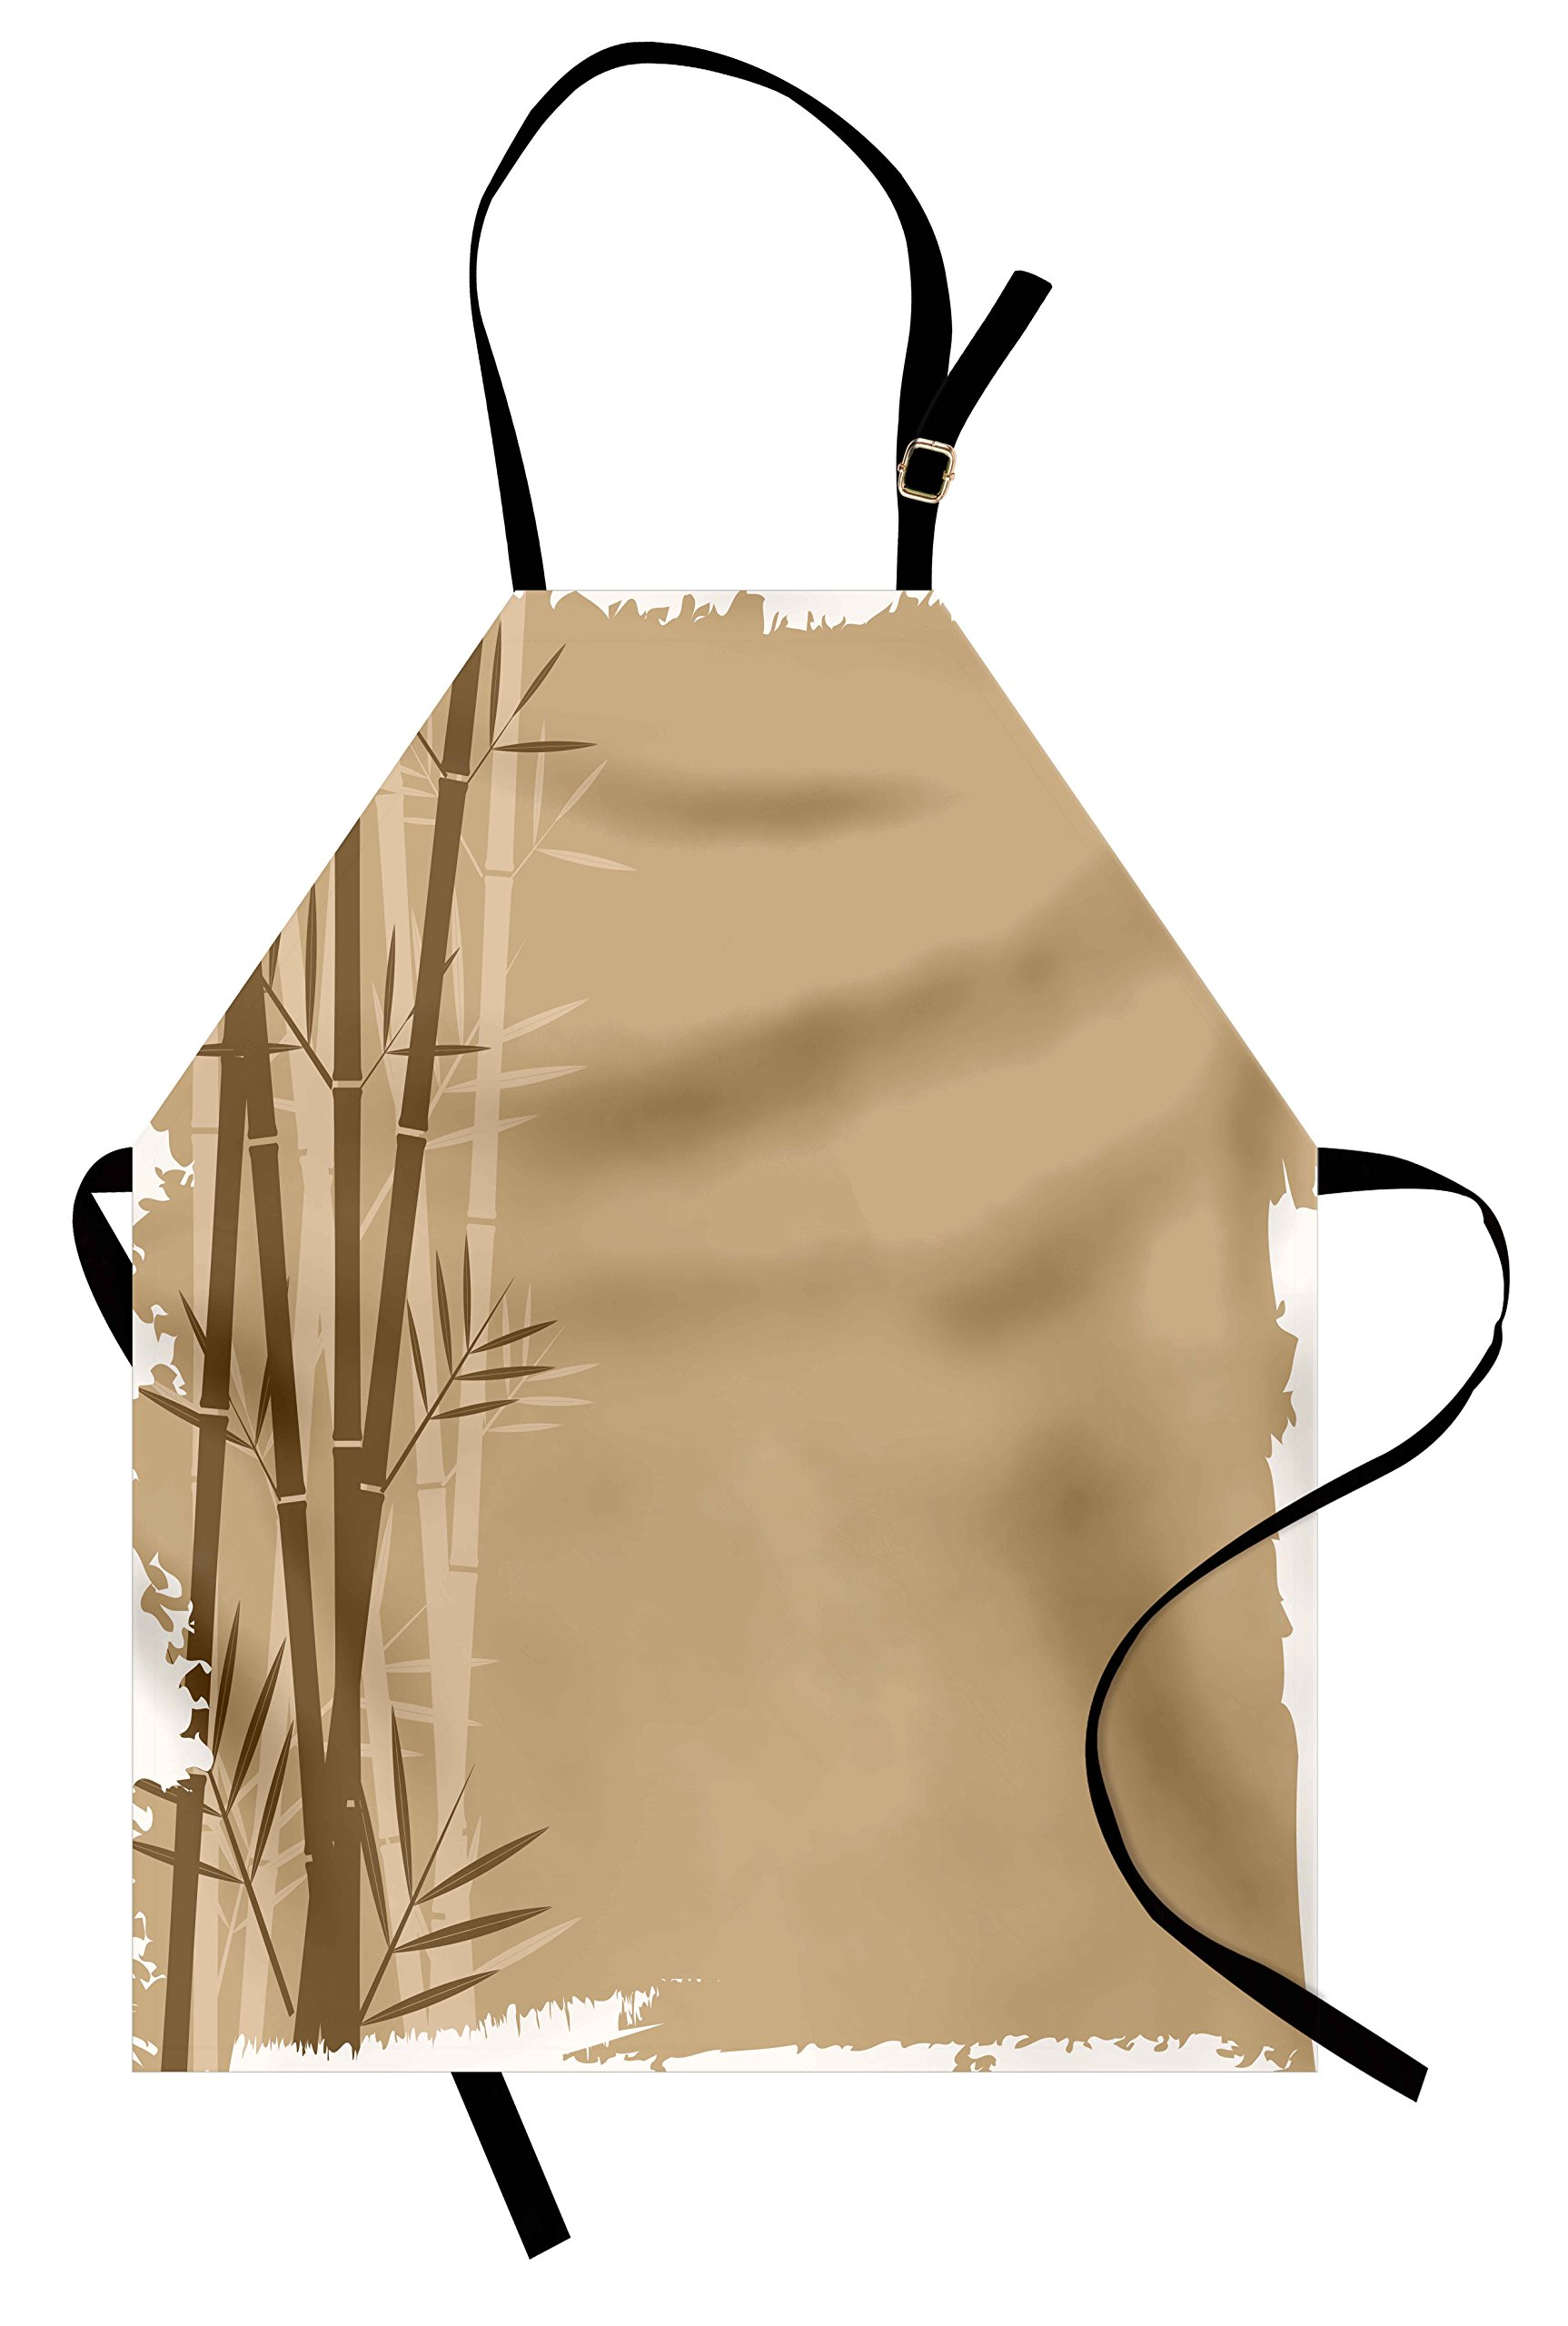 Lunarable Camel Color Apron, Exotic Bamboo Plant with Grungy Look Zen Spa Feng Shui Theme Asian Nature, Unisex Kitchen Bib Apron with Adjustable Neck for Cooking Baking Gardening, Camel Brown